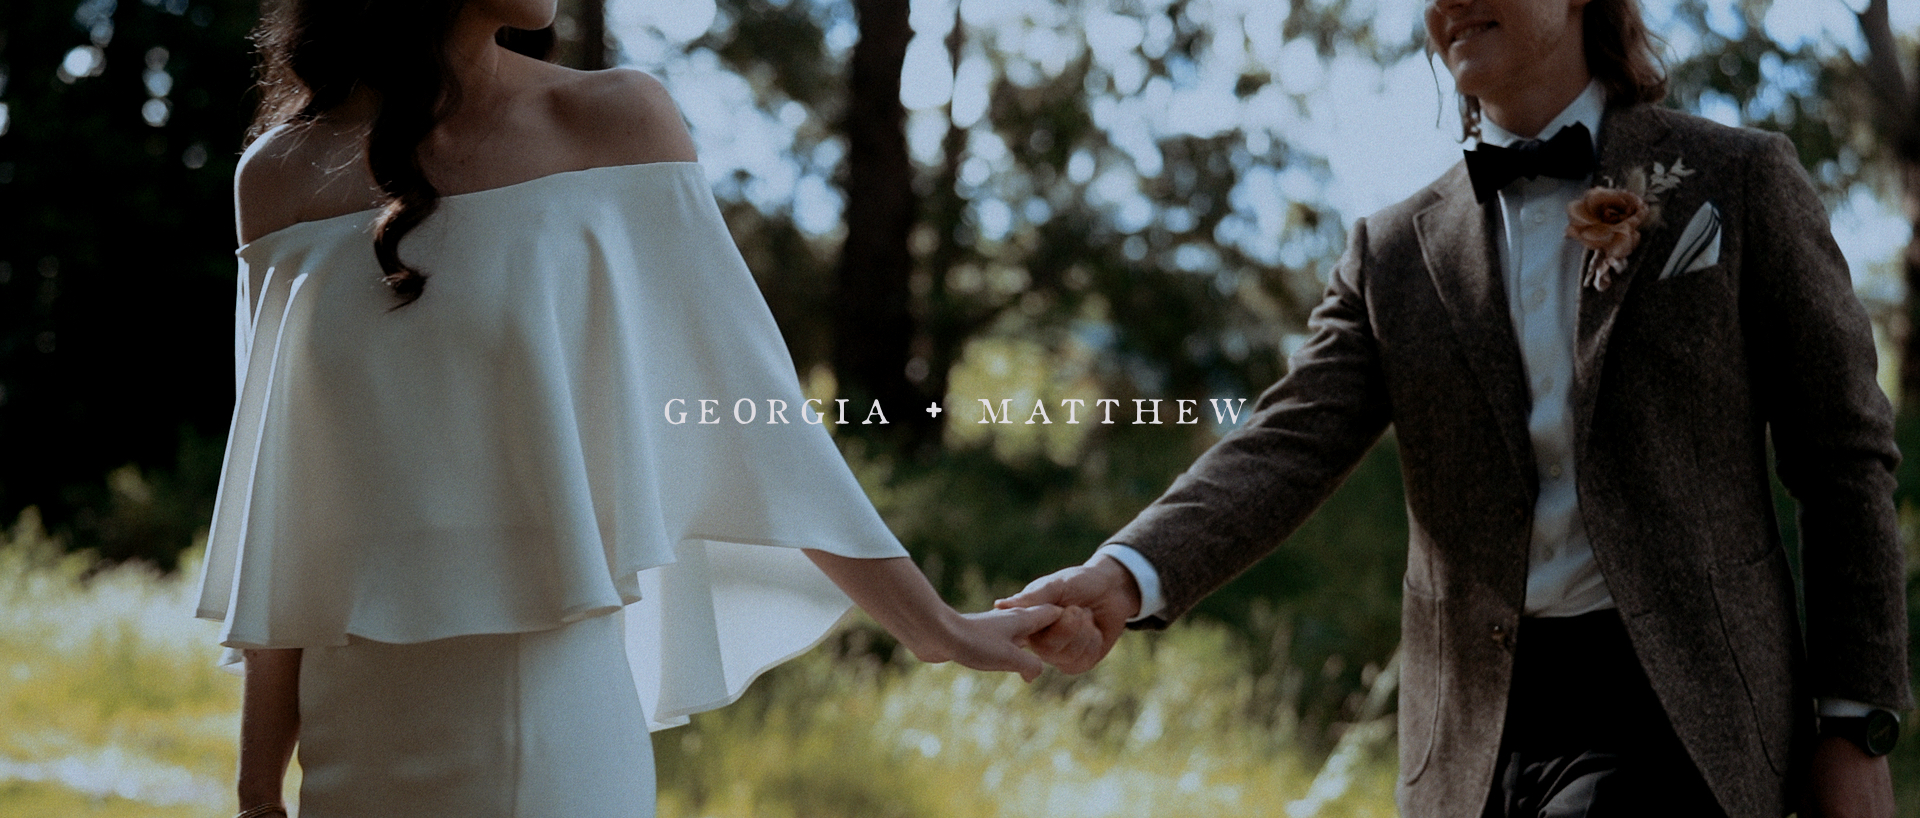 Georgia + Matthew | Trentham, Australia | The Estate Trentham